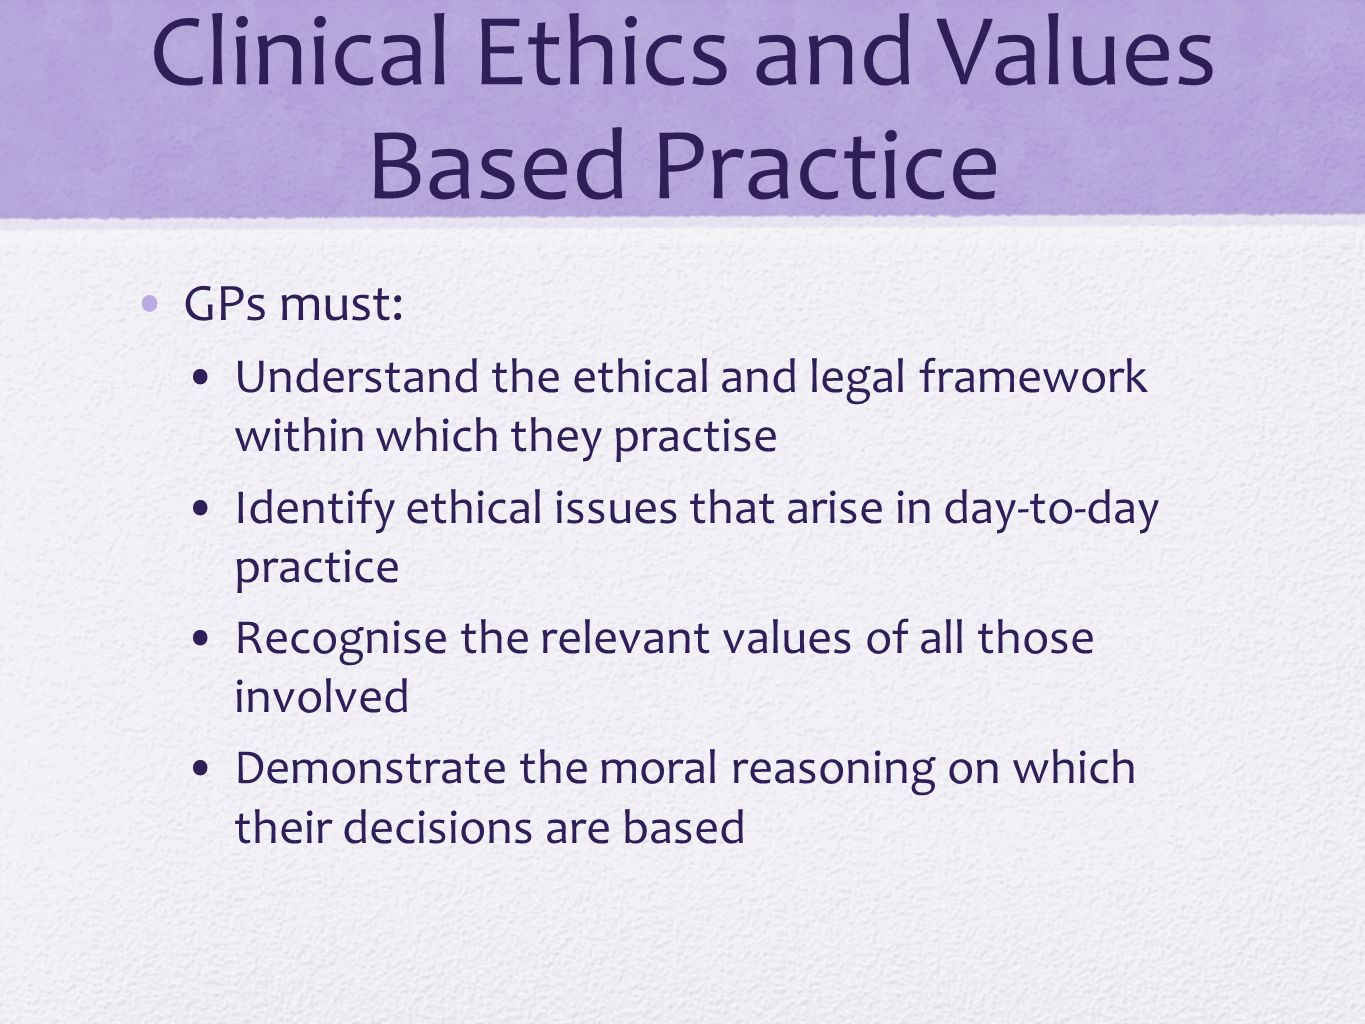 Clinical Ethics and Values Based Practice